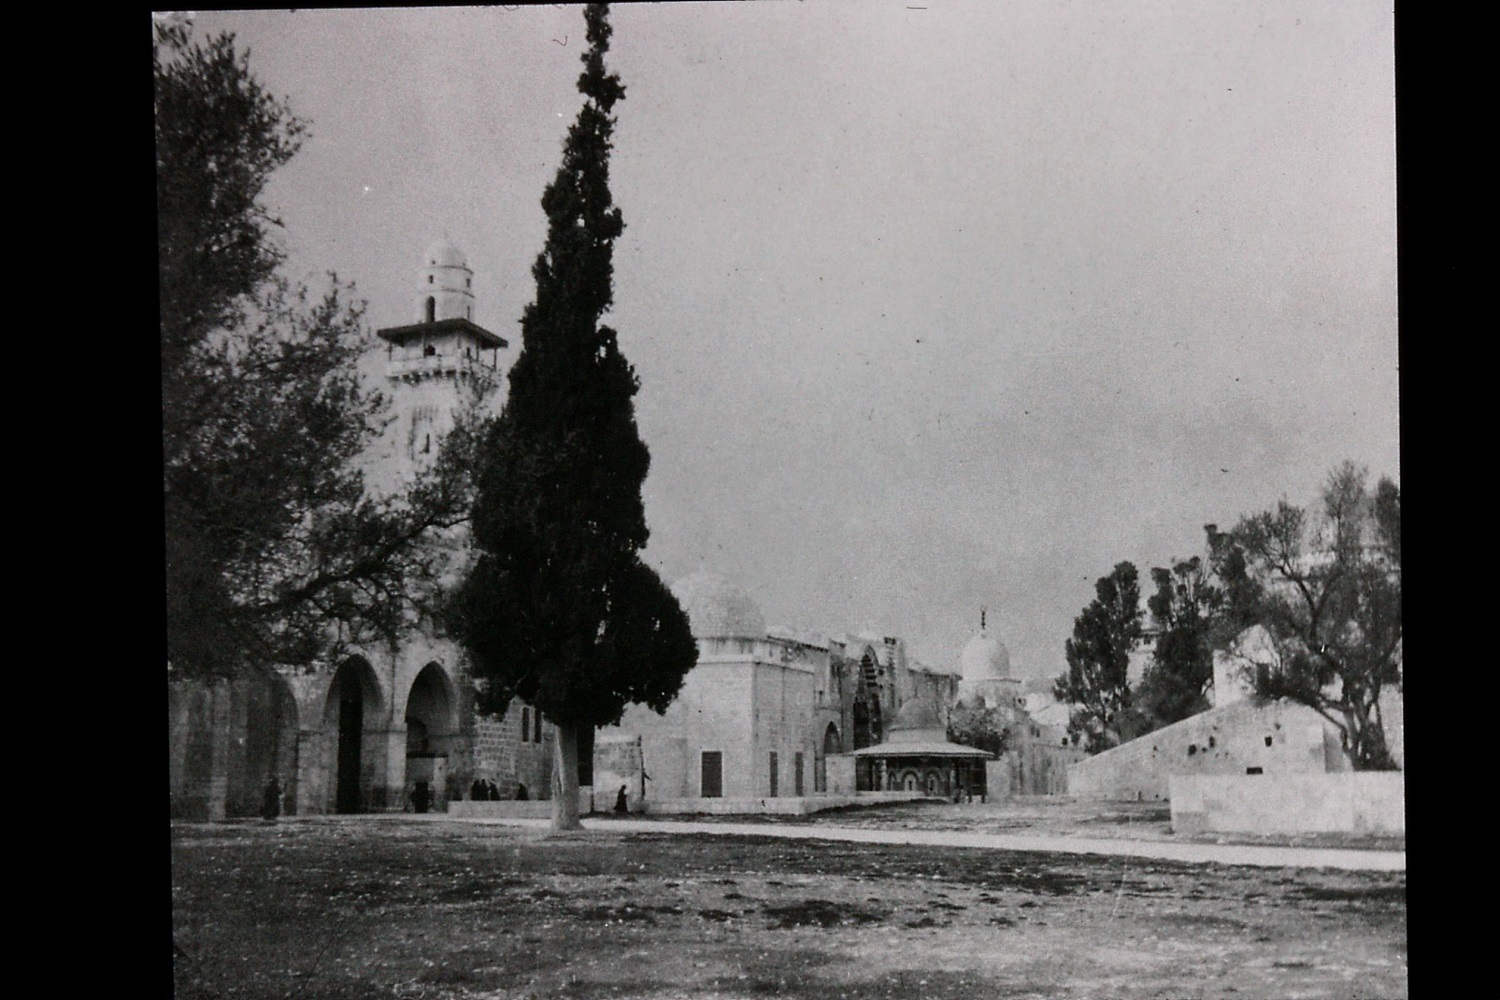 Gertrude Bell's photograph of general view of Haram esh-Sharif (Temple Mount), December 1899. Catalogue number A54.